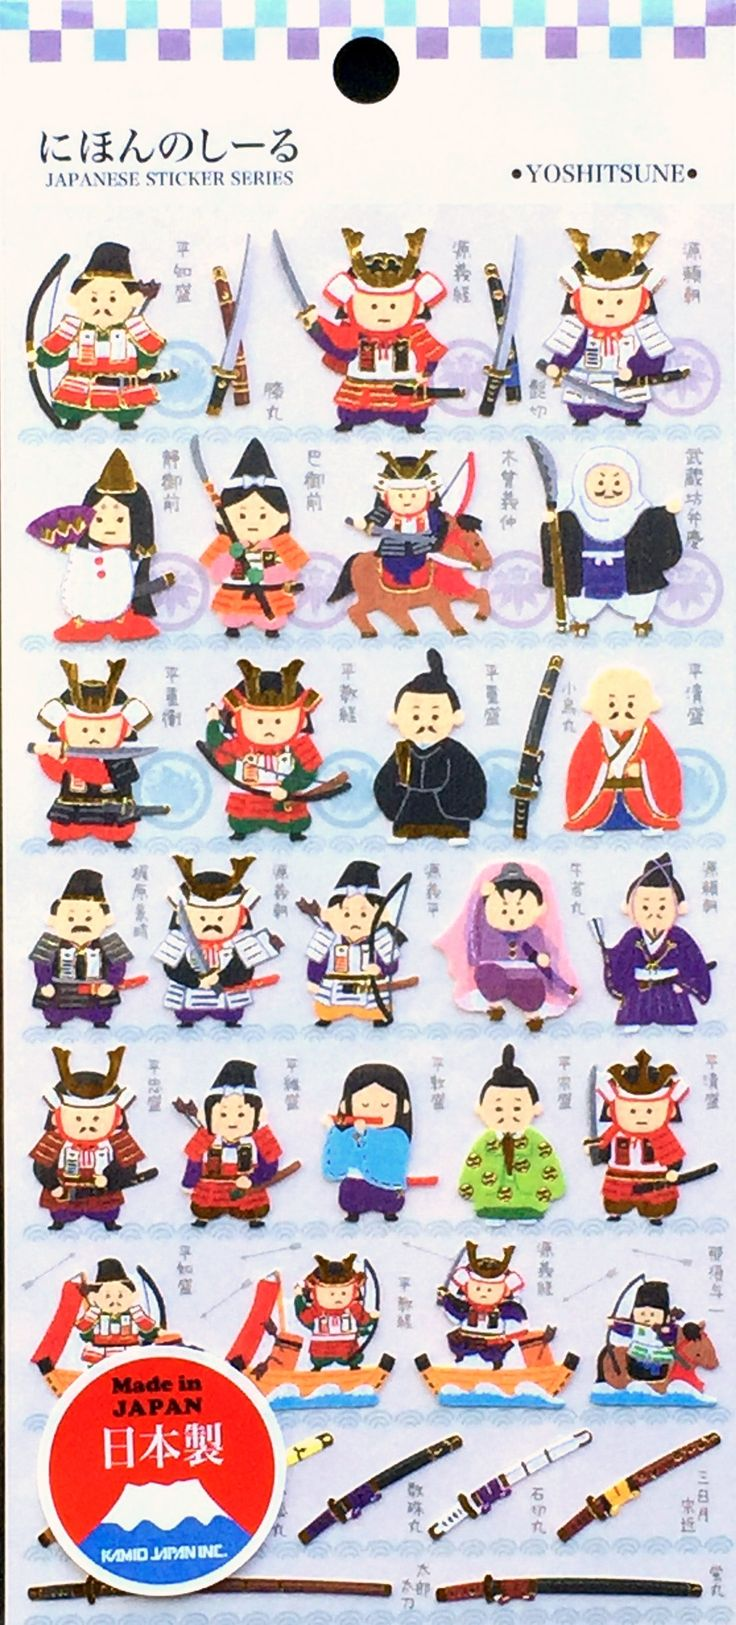 Japanese Stickers - Minamoto no Yoshitsune - Cute Famous People in History - Traditional Japanese Stickers - Washi Paper Stickers - S31 by FromJapanWithLove on Etsy